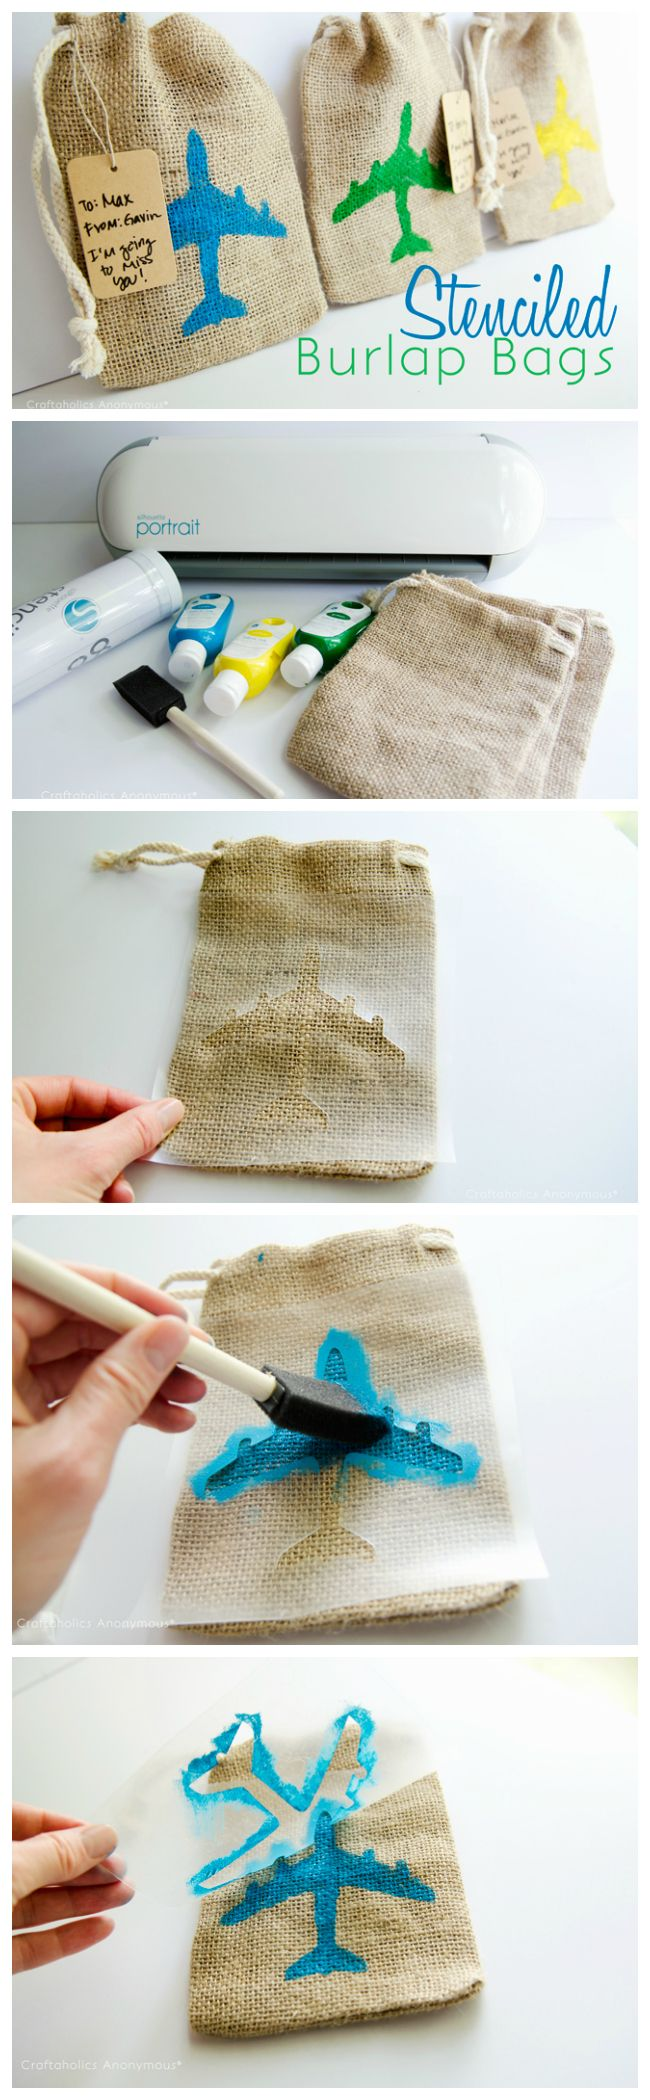 Make your own custom reusable stencils! These are really cute gift bags. Love the little airplanes.